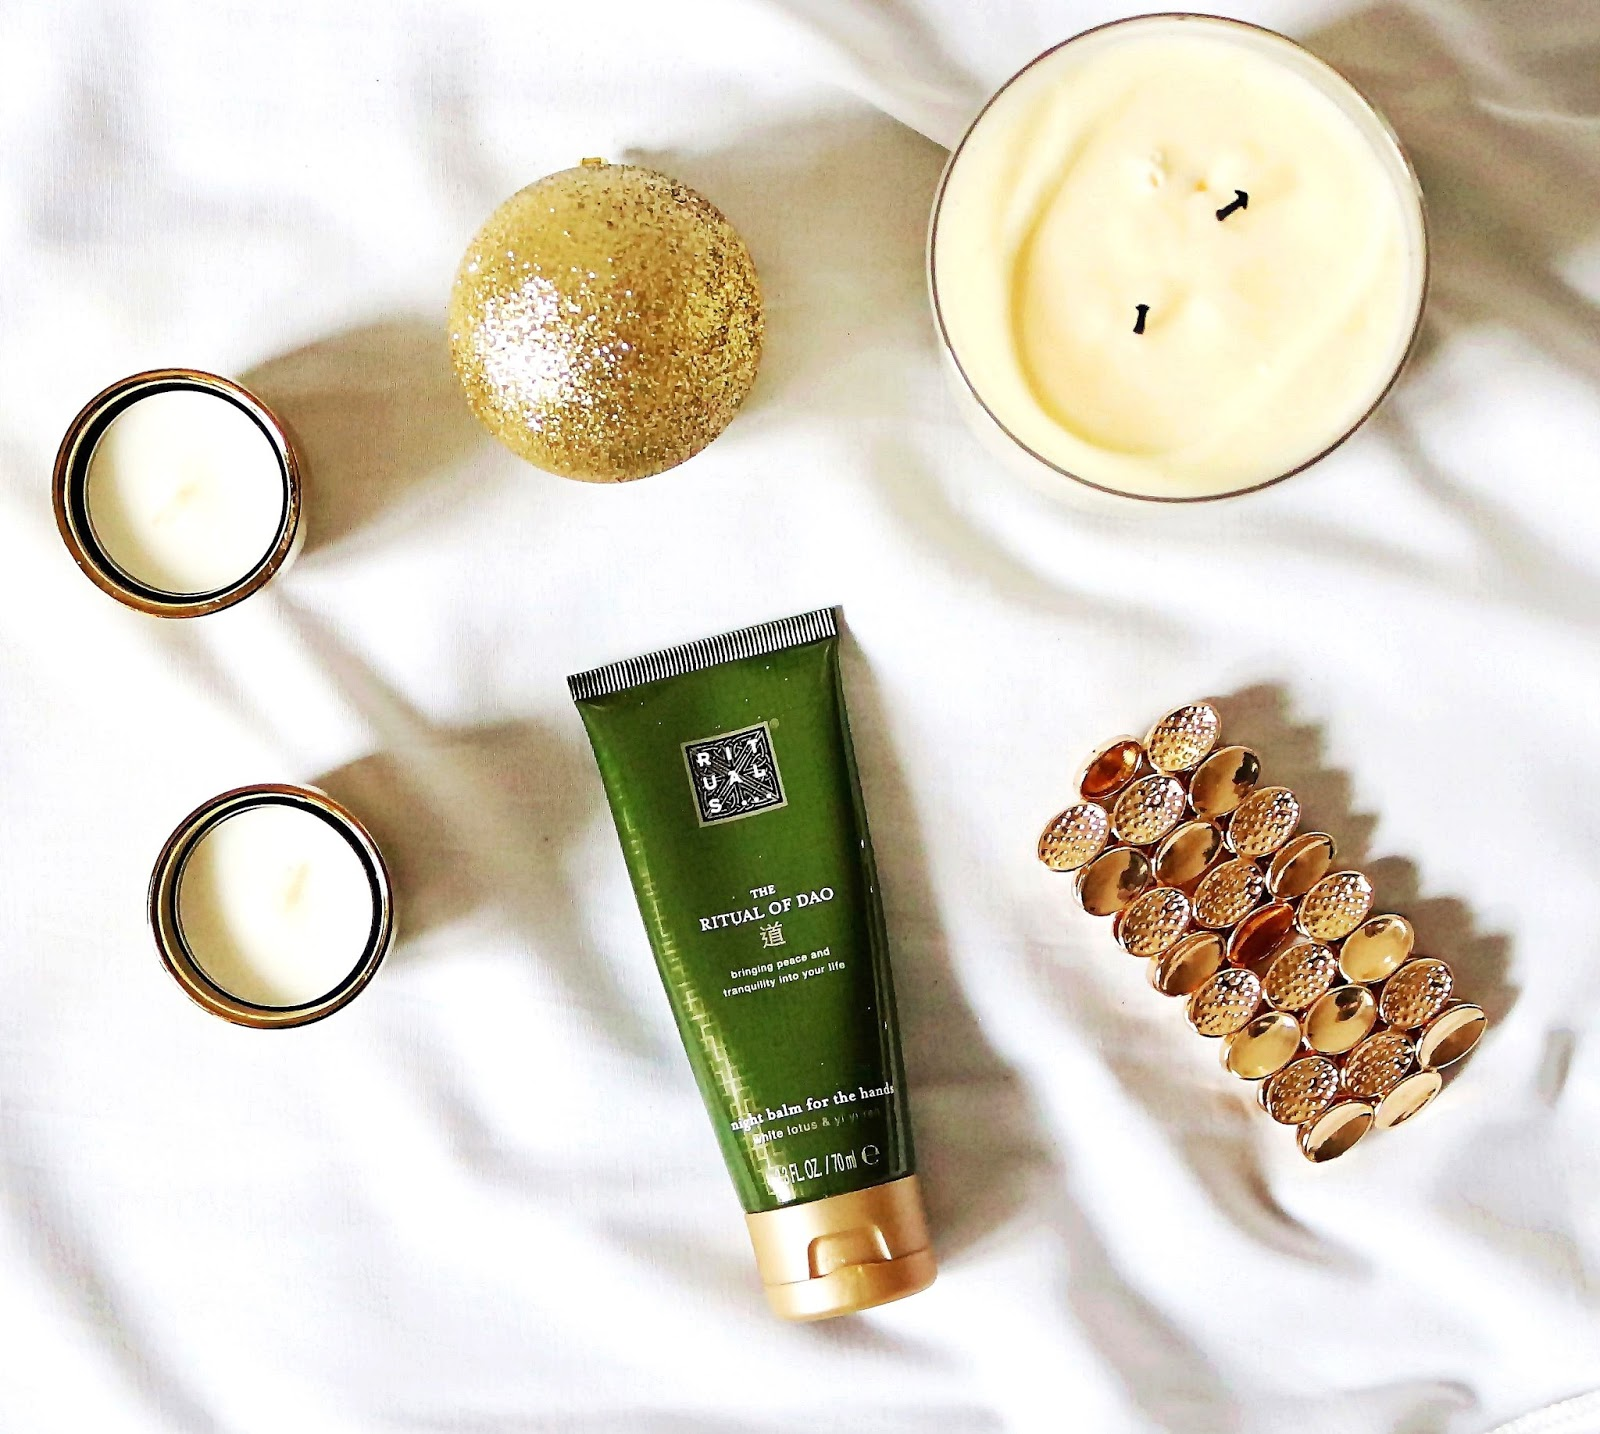 RITUALS - Dao Soothing Night Balm